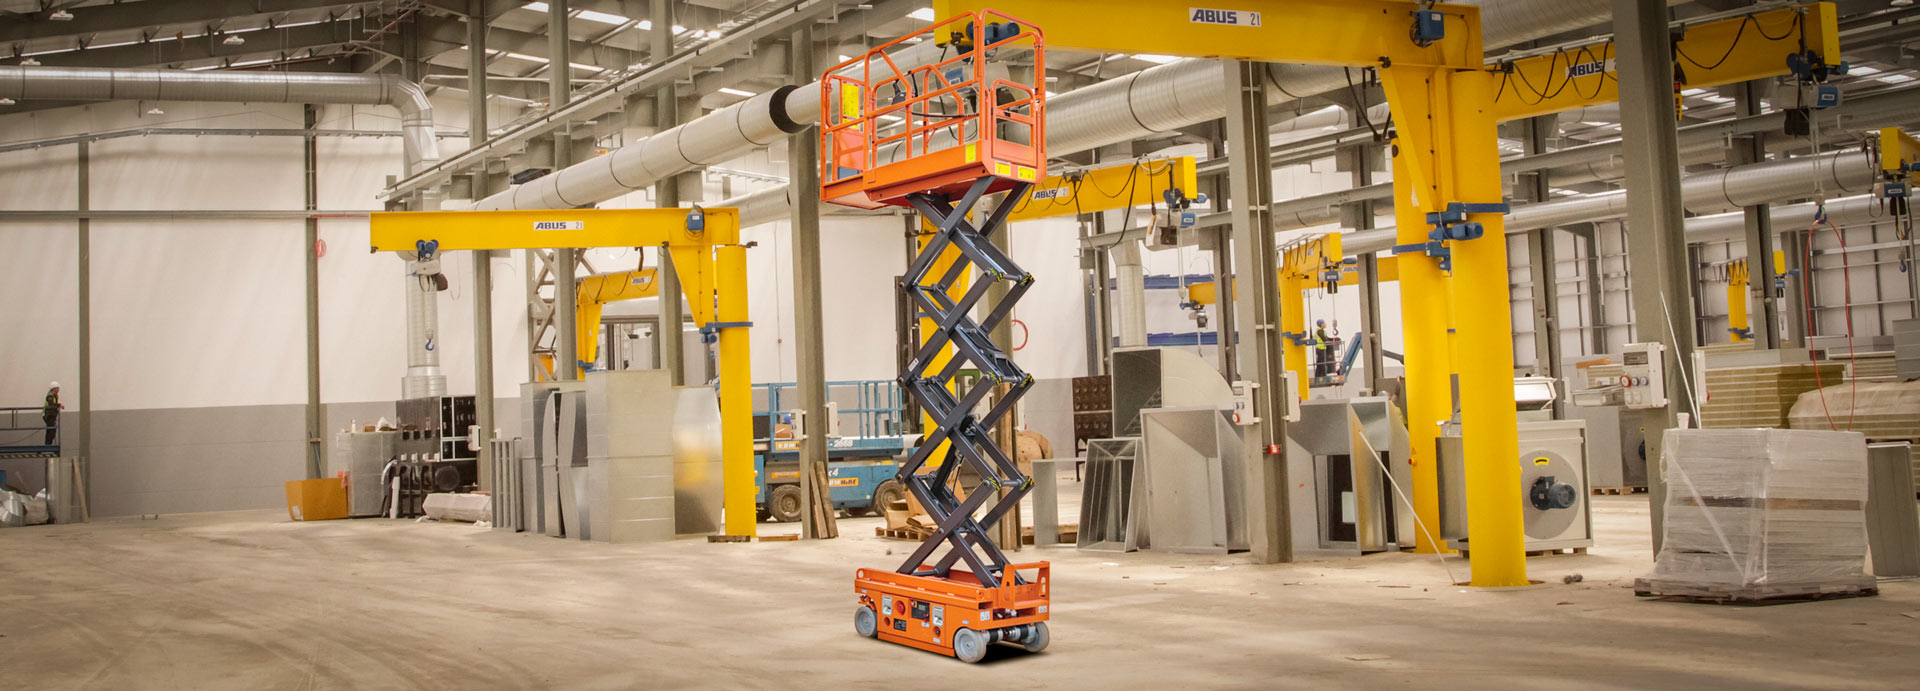 Dingli Rizer S036-RS Scissor Lift